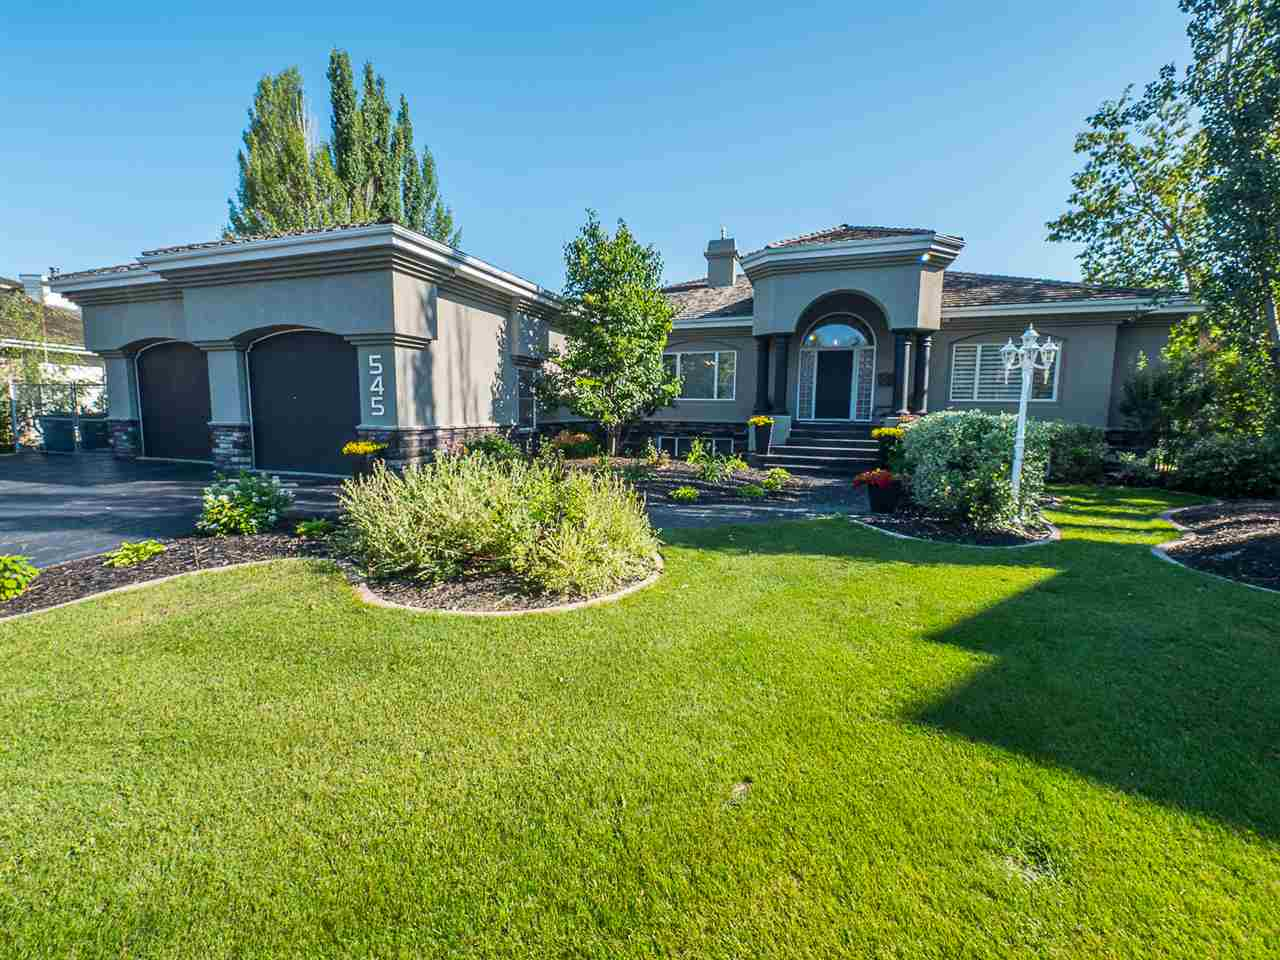 545 ESTATE Drive, 4 bed, 4 bath, at $1,299,900